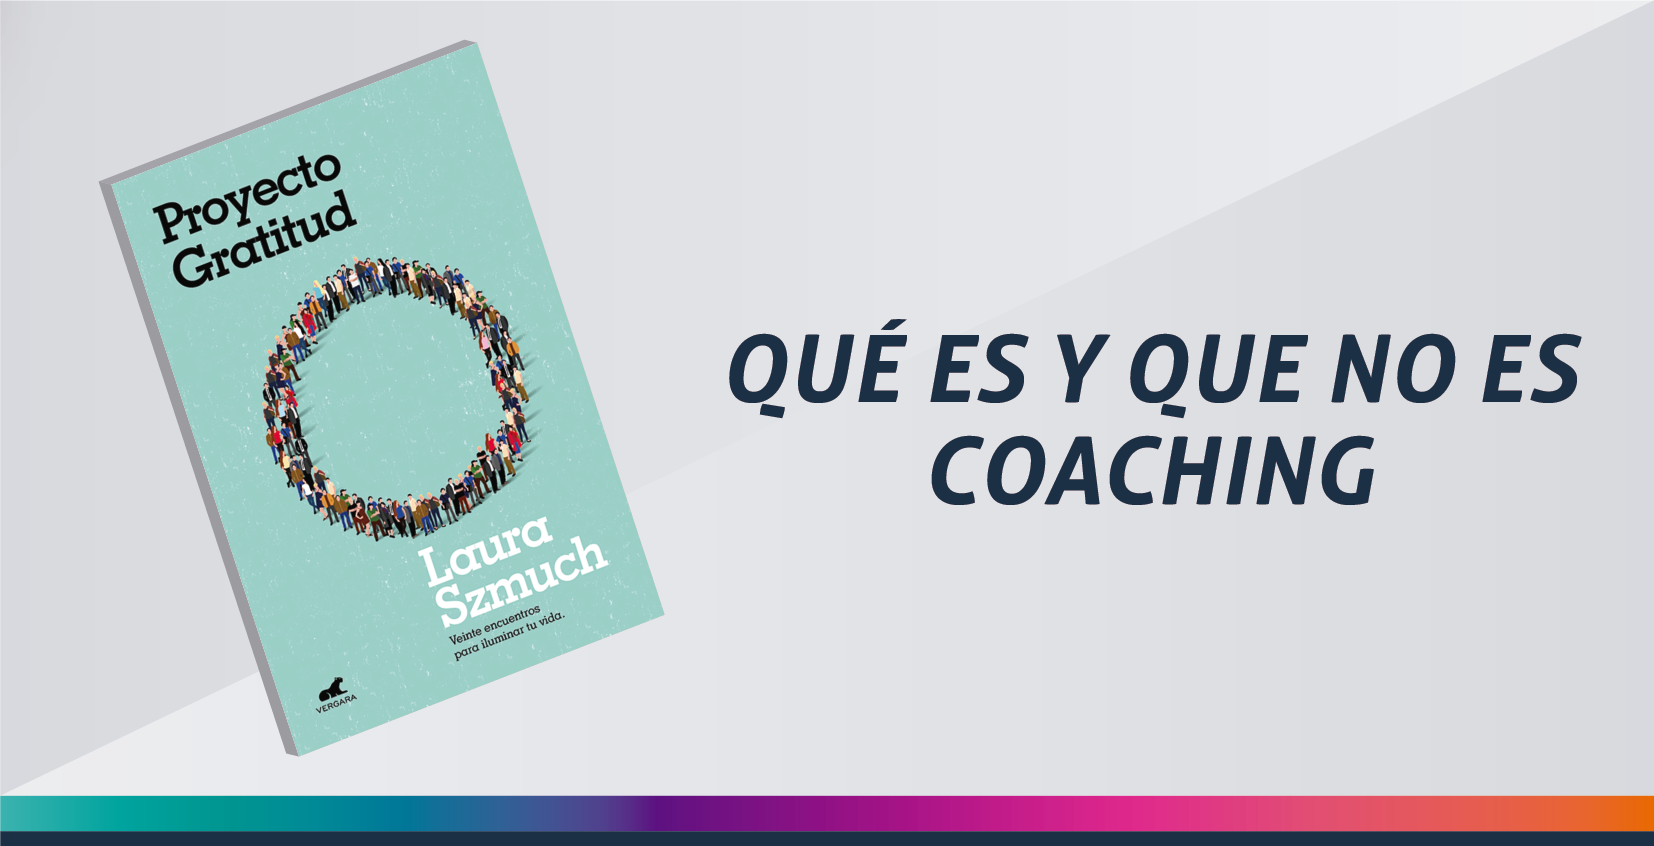 QUE ES Y QUE NO ES COACHING